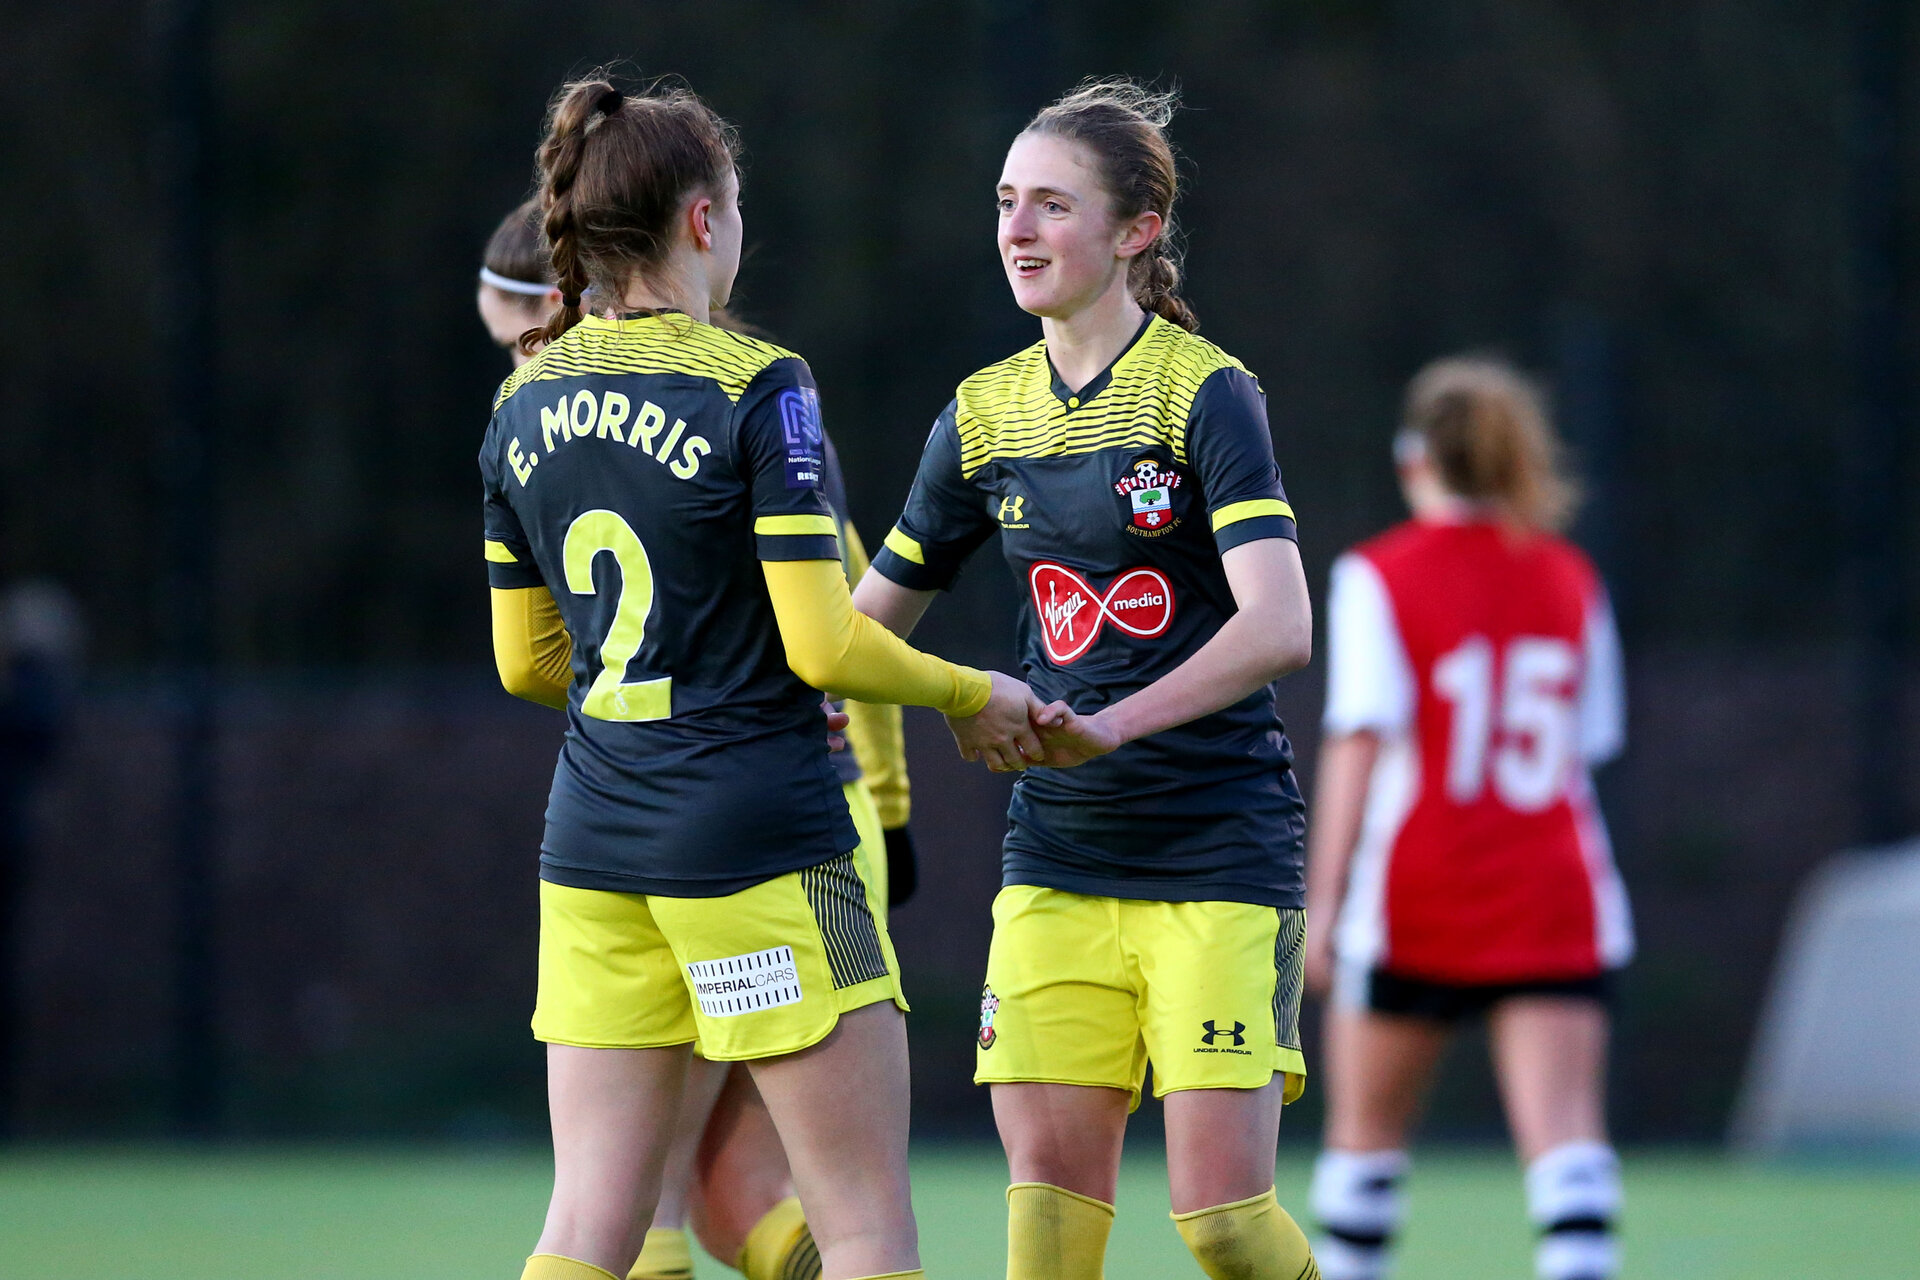 EXETER, ENGLAND - February 16: Ella Morris (L) and Shannon Albuery (R) during the SRWFL at Cat and Fiddle Training Ground between Exeter and Southampton Women on February 16 2020, Exeter, England. (Photo by Isabelle Field/Southampton FC via Getty Images)